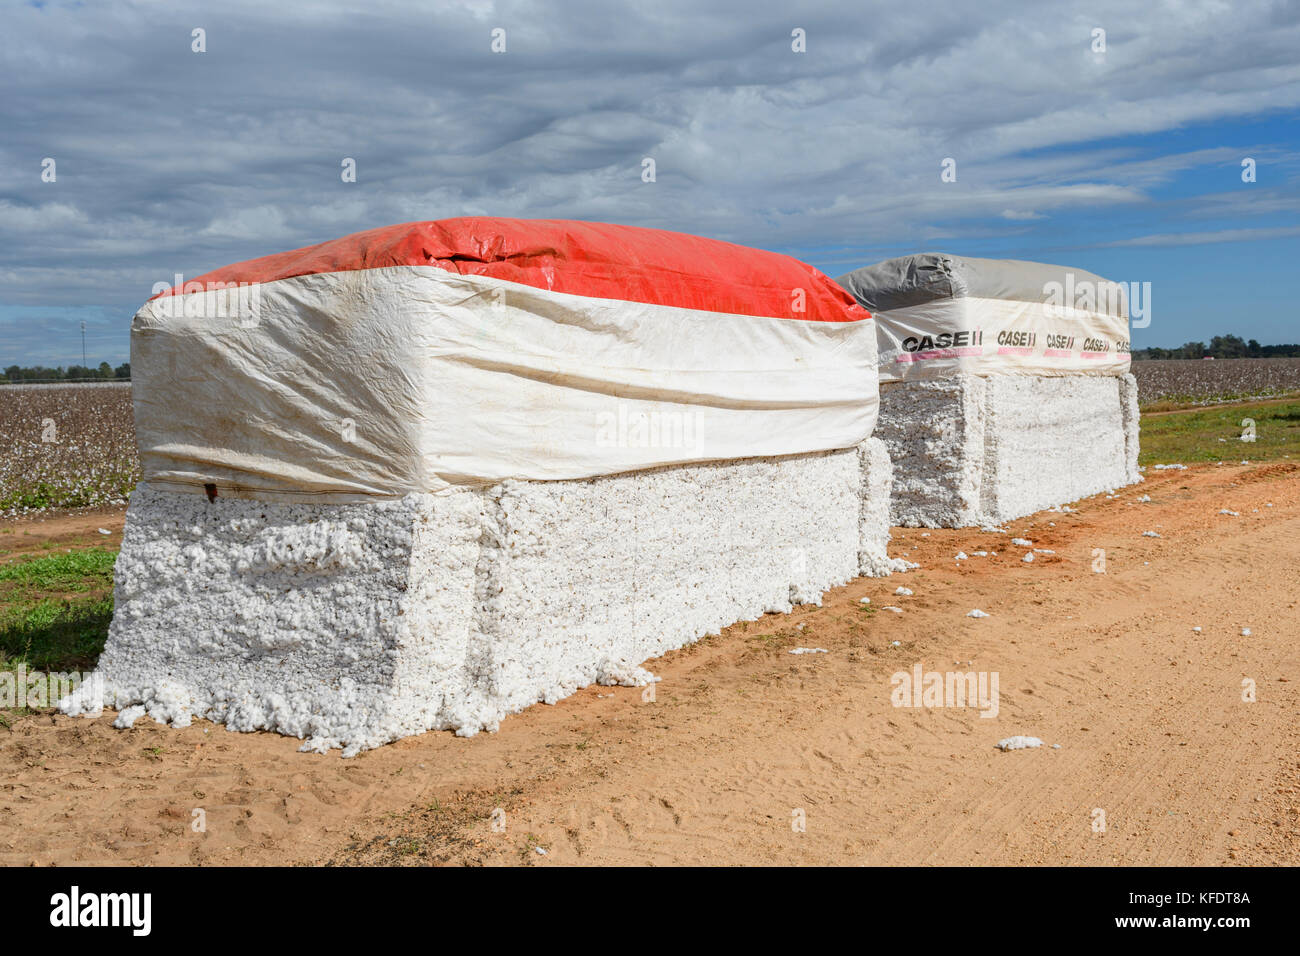 Large freshly picked cotton bales on a farm road in rural central Alabama, USA. - Stock Image